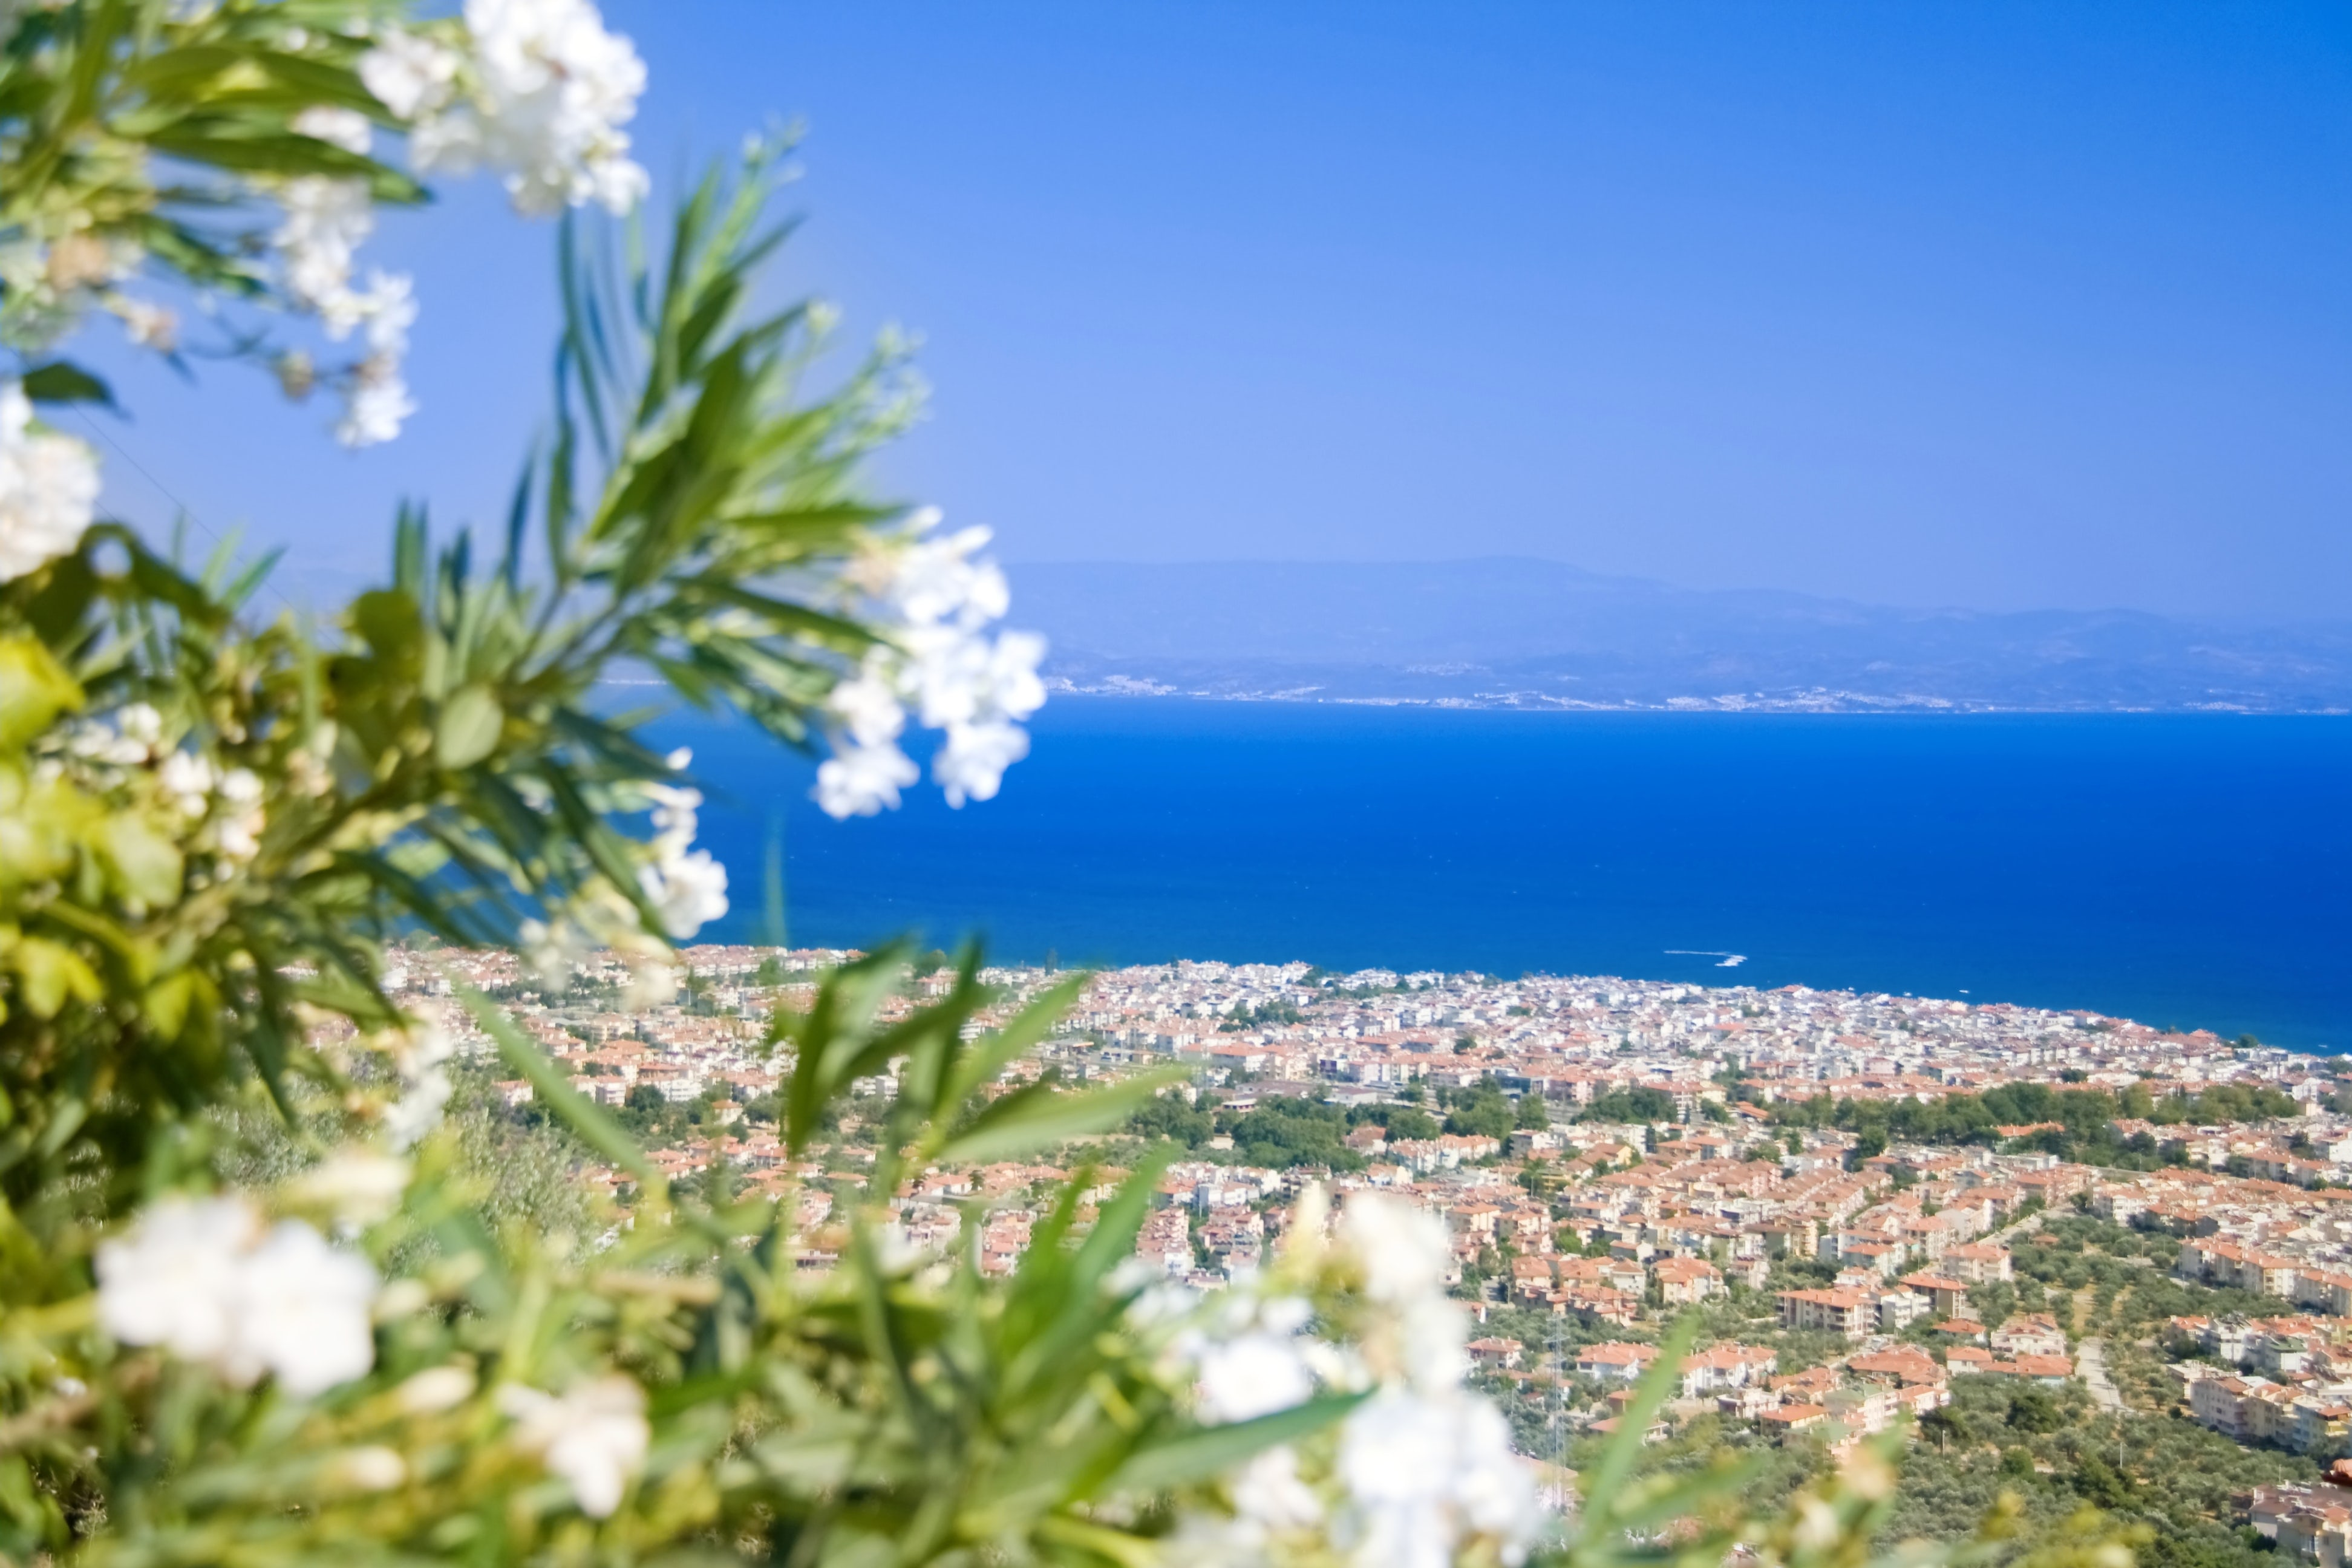 Edremit: The City of Olive Oils and the Color of Blue